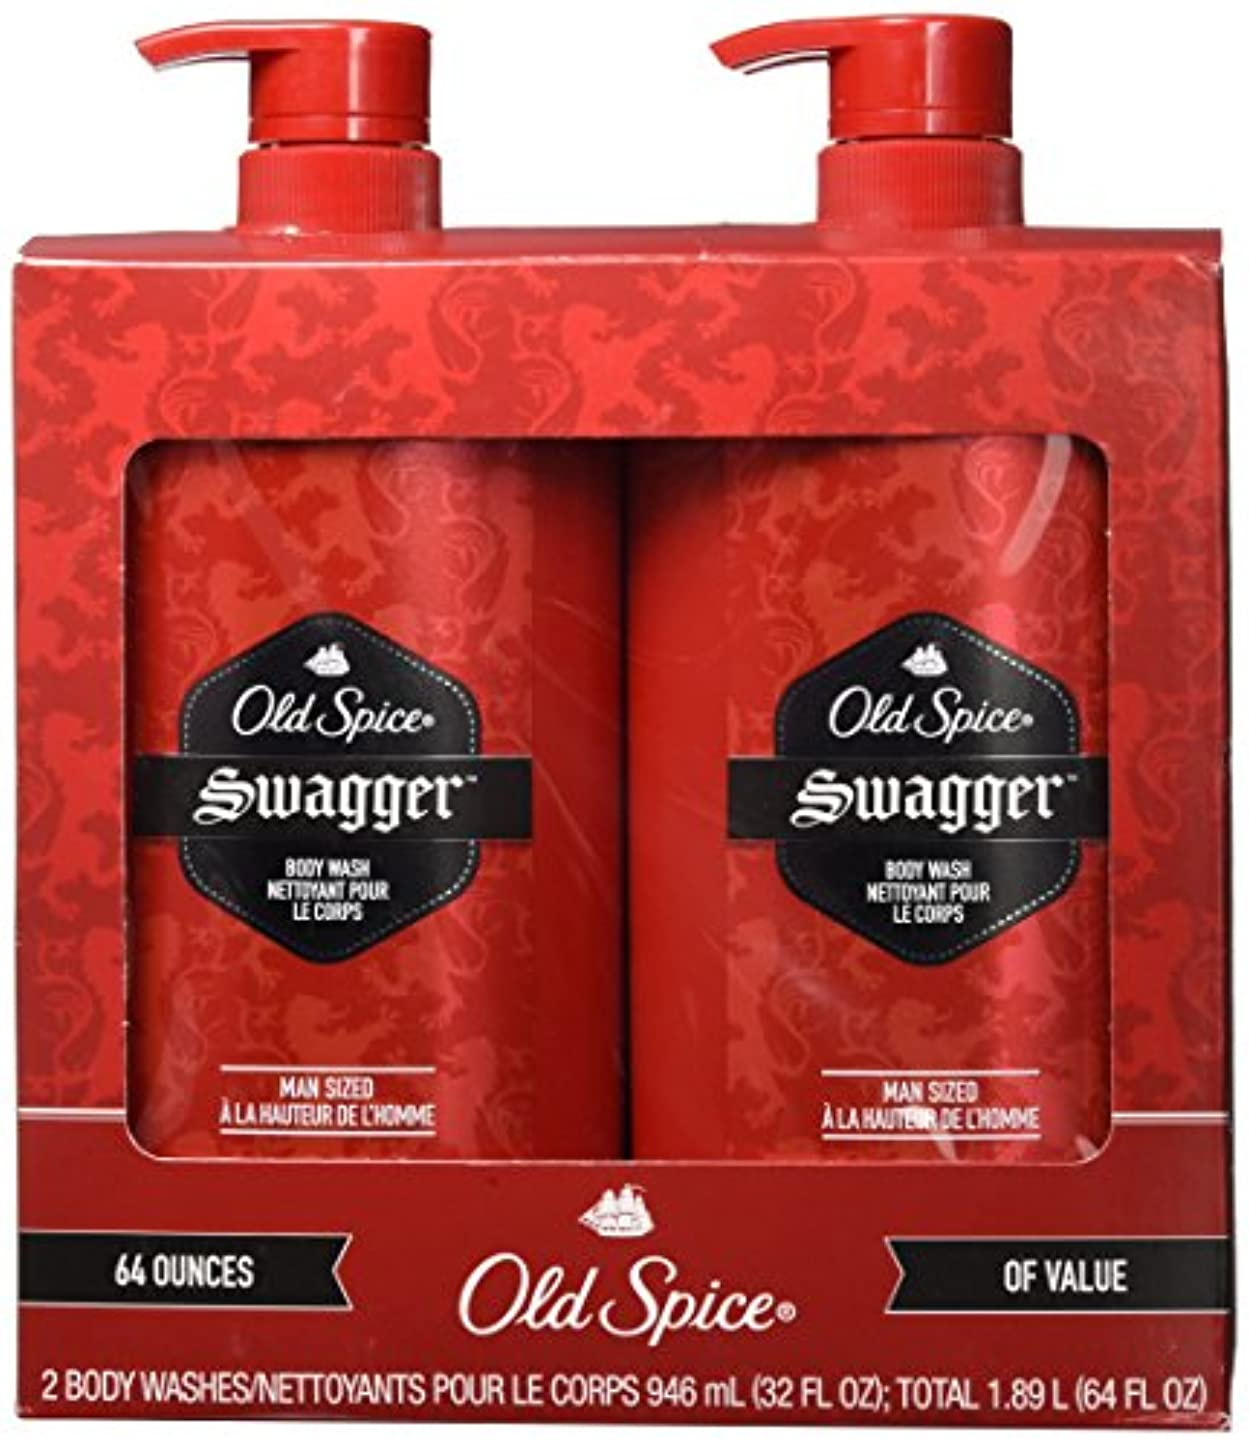 果てしない笑解き明かすLOT OF 2 Old Spice Swagger Body Wash 64 Ounces Total Man Sized Shower Bath NEW by Old Spice